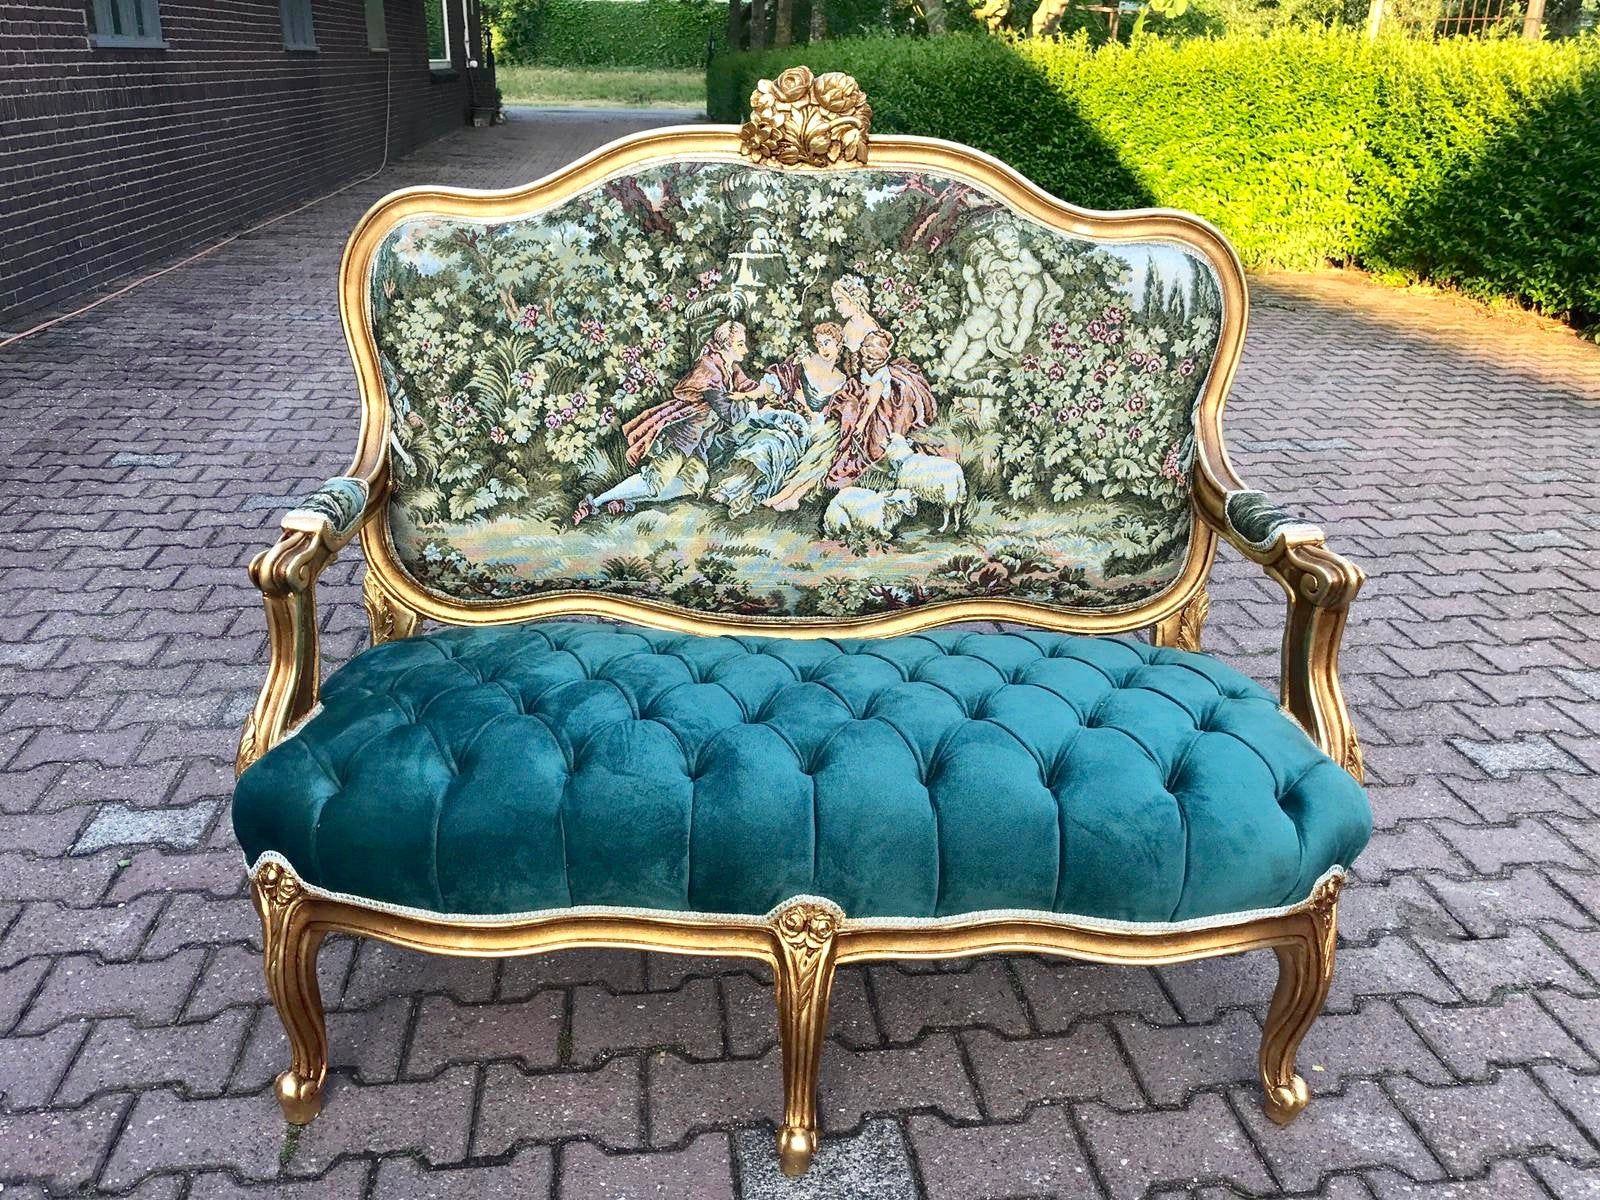 French Settee French Marquise Vintage Furniture Louis Xvi Etsy In 2020 Rococo Furniture Furniture Baroque Furniture